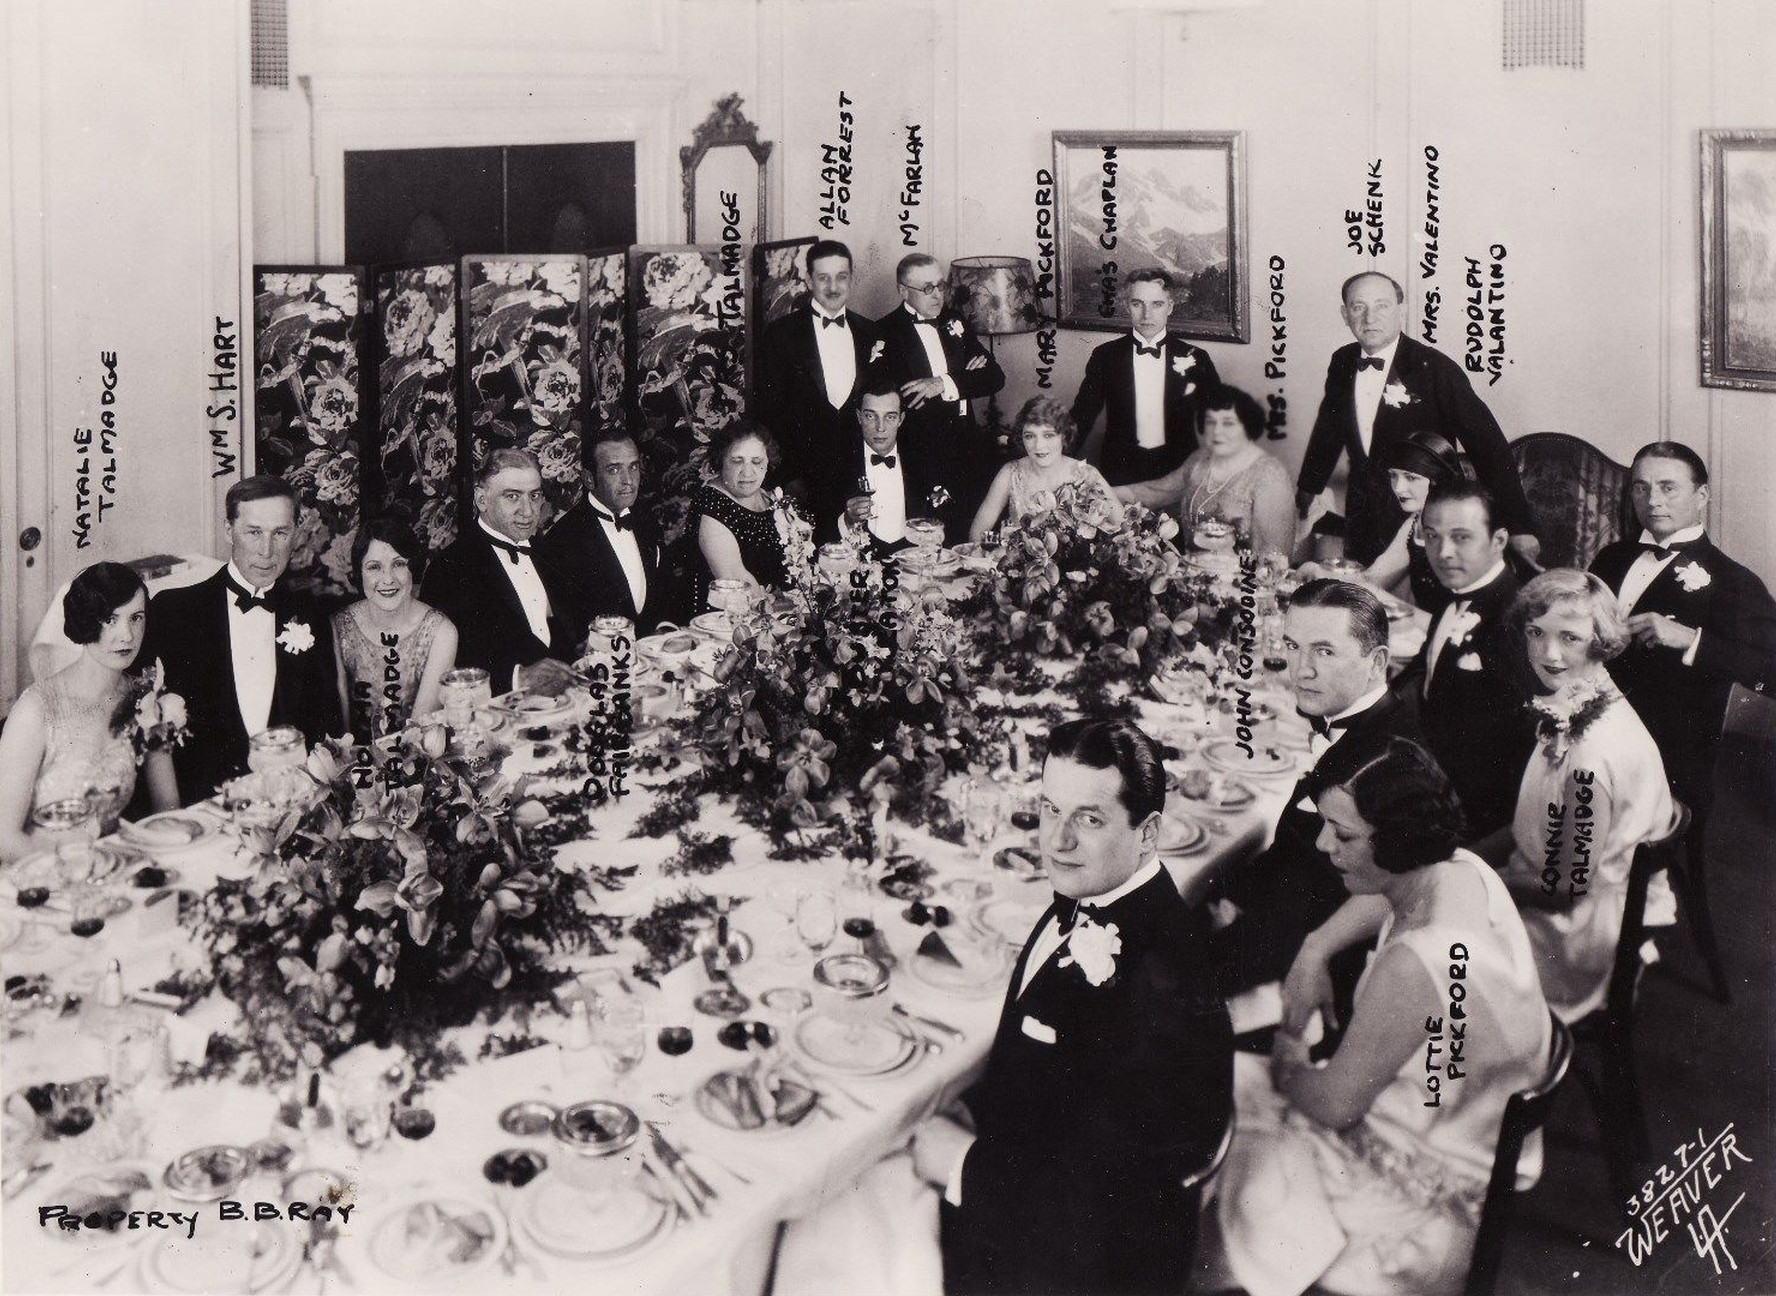 Classic Hollywood #84 - Party For Rudolph Valentino?